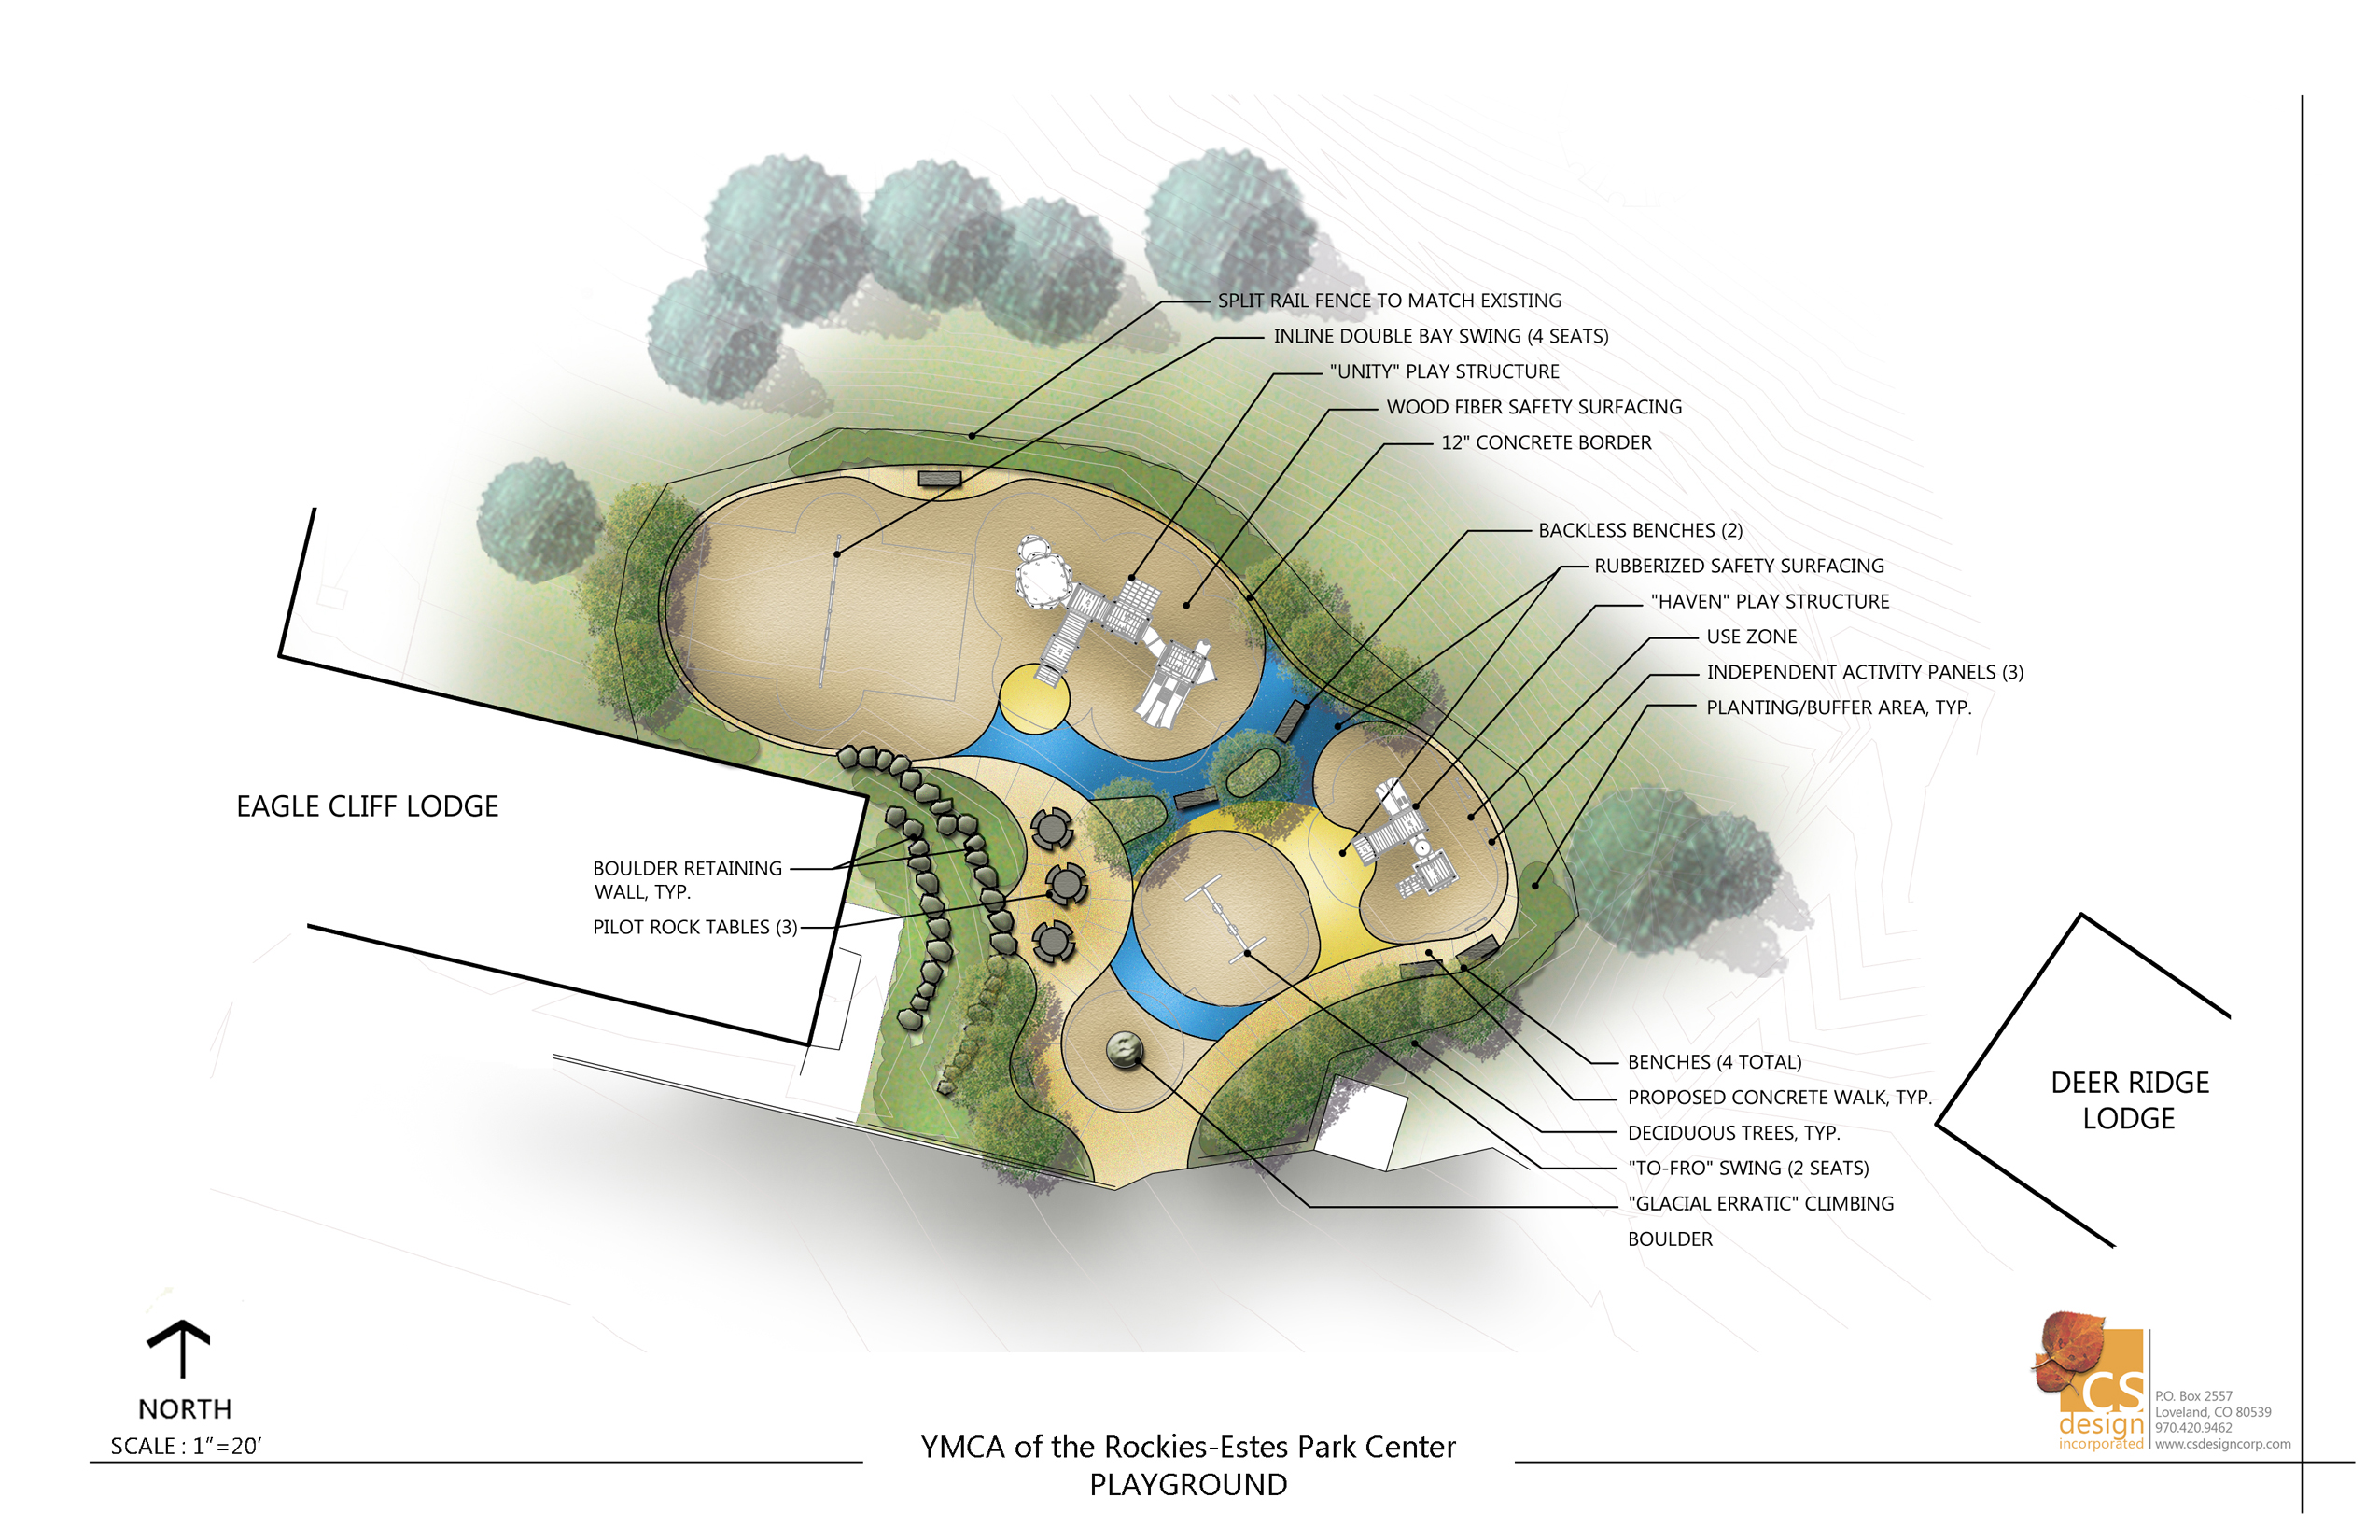 Rendered plan of the playground